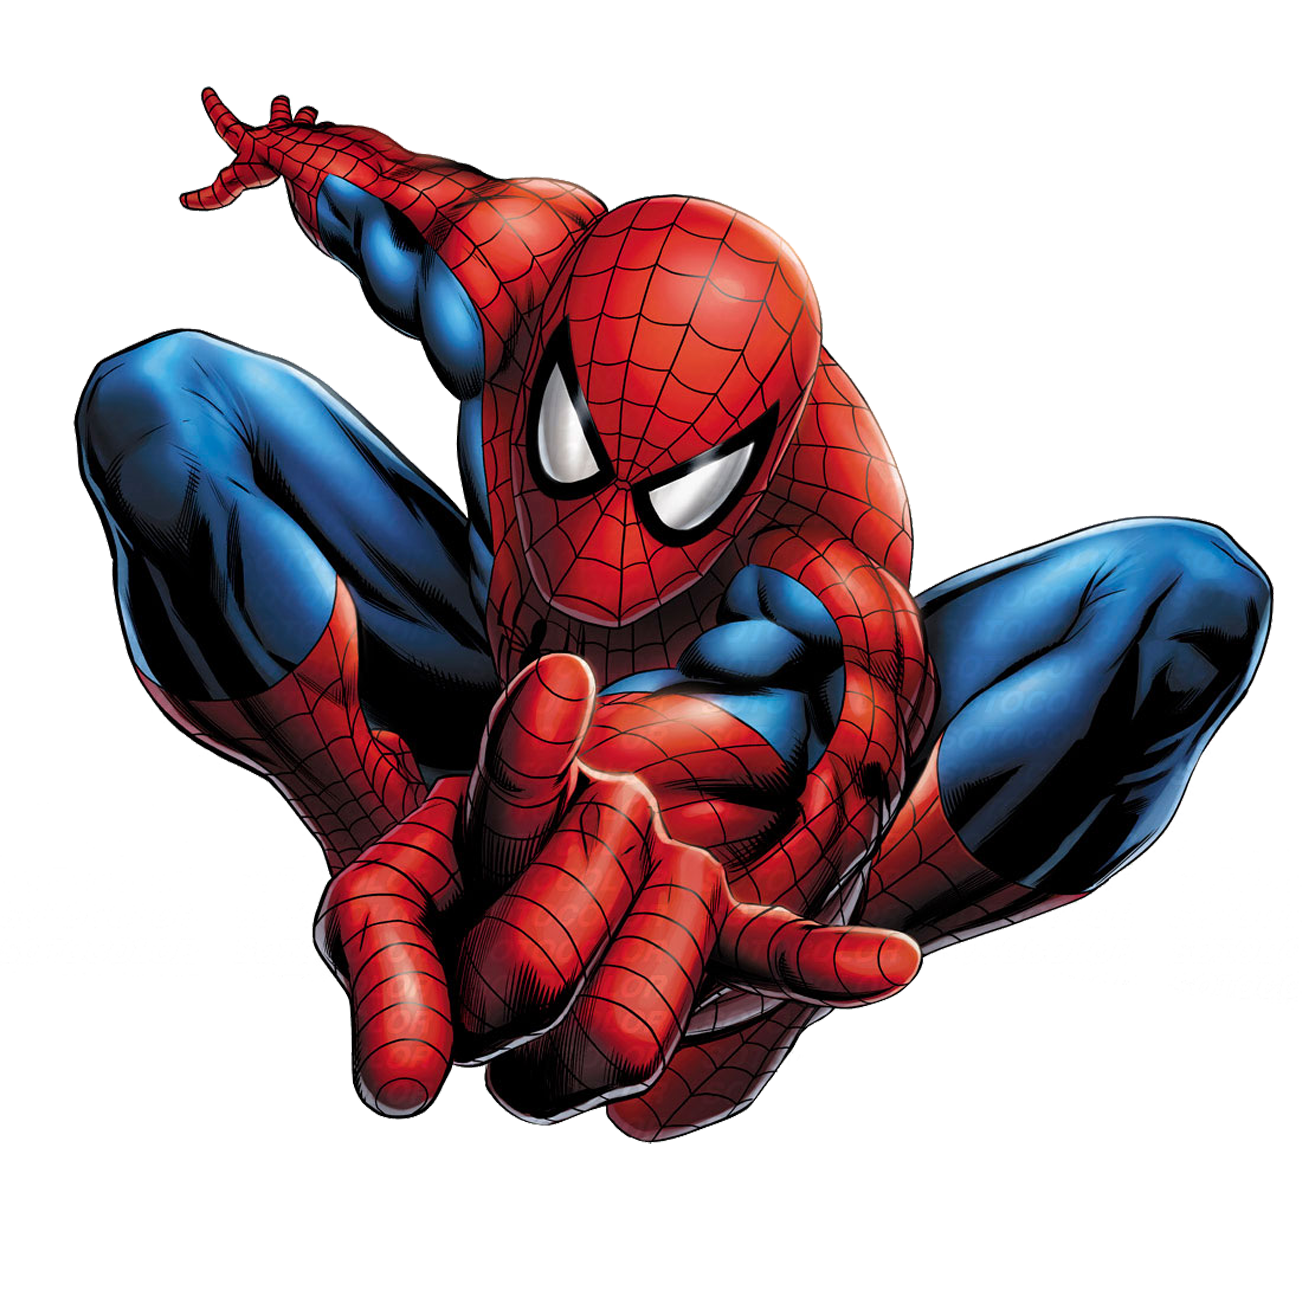 Free high resolution comic book clipart graphic freeuse stock SpiderMan PNG Image - PurePNG | Free transparent CC0 PNG Image Library graphic freeuse stock